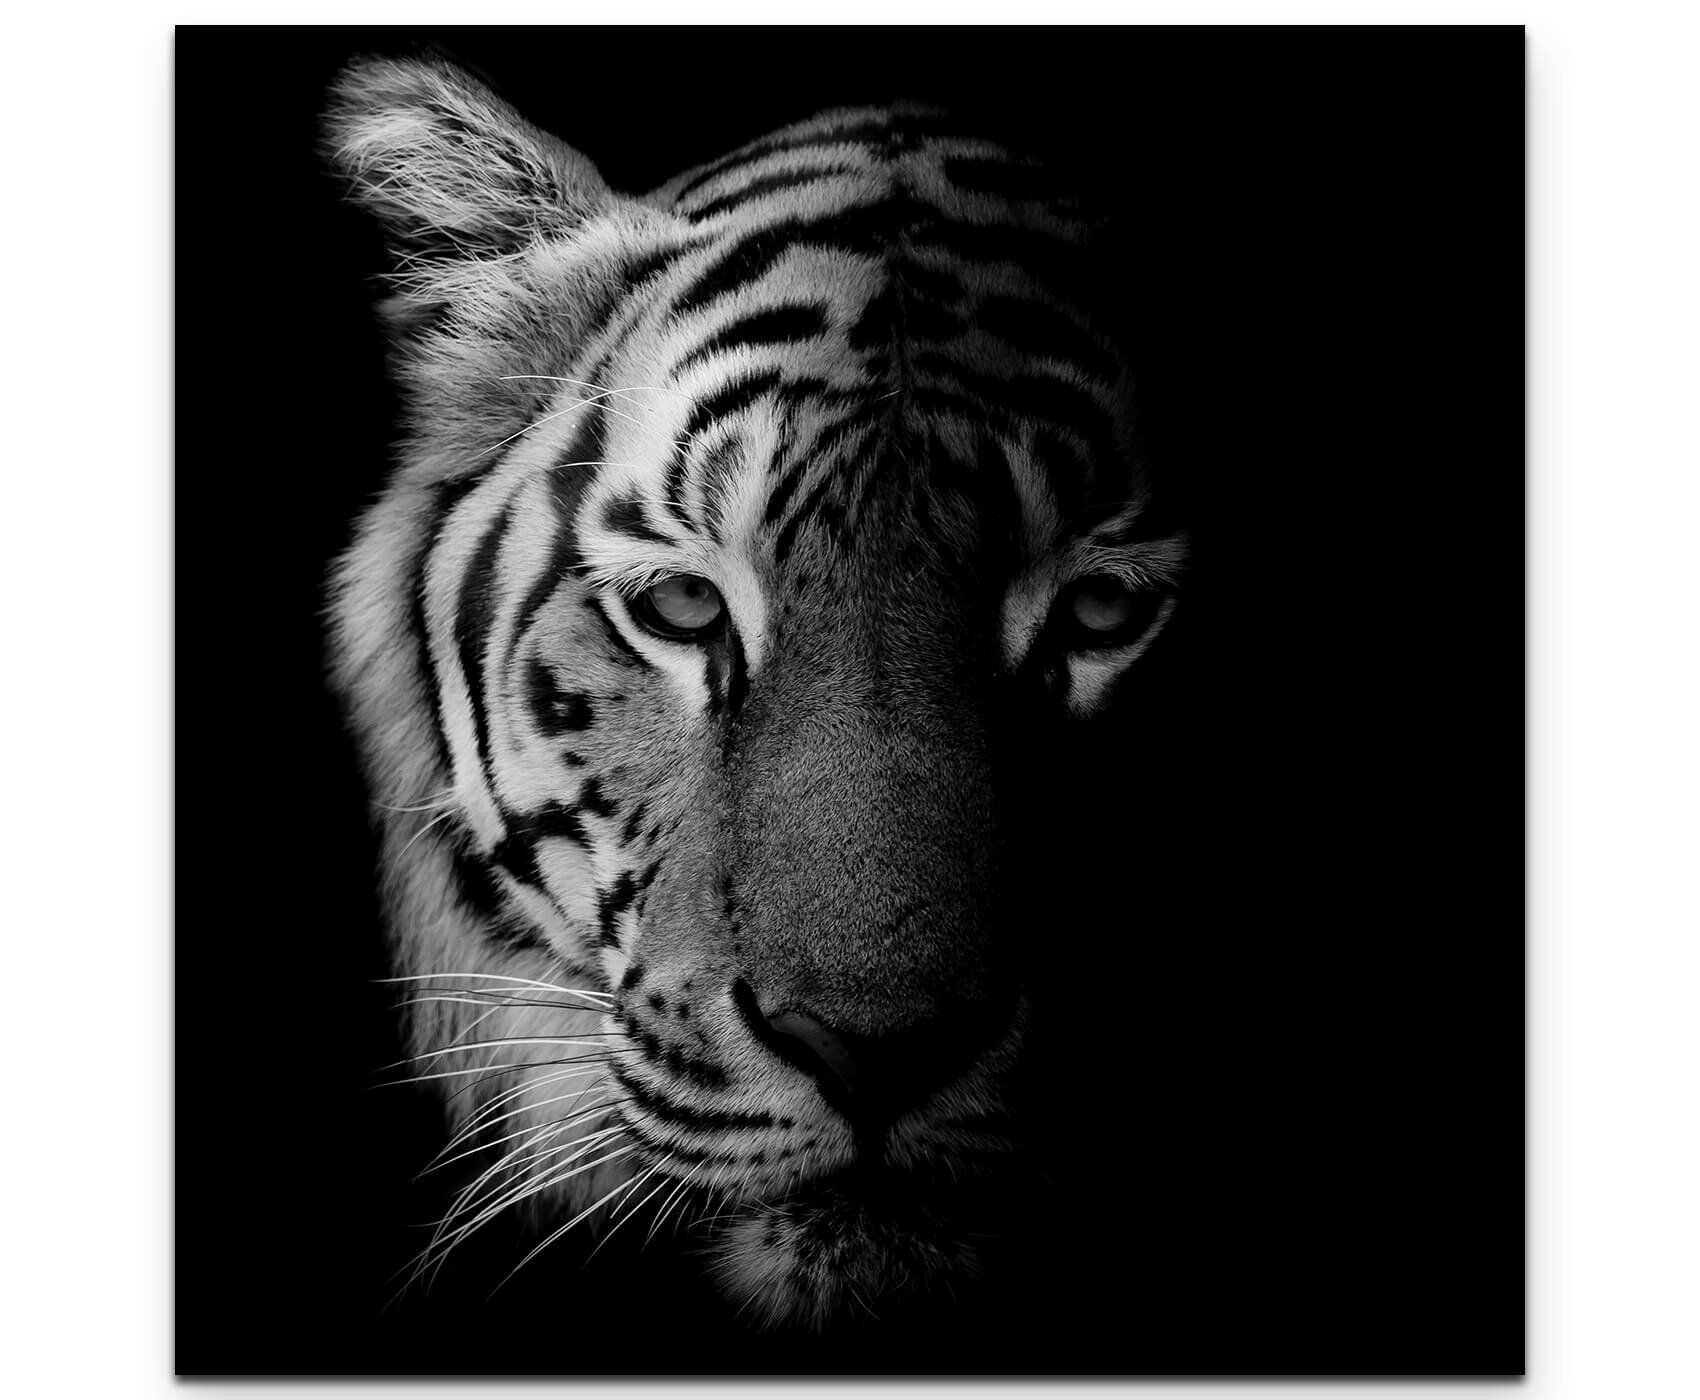 1775a9fe4 East Urban Home Portrait of a Tiger Print on Canvas | Wayfair.co.uk